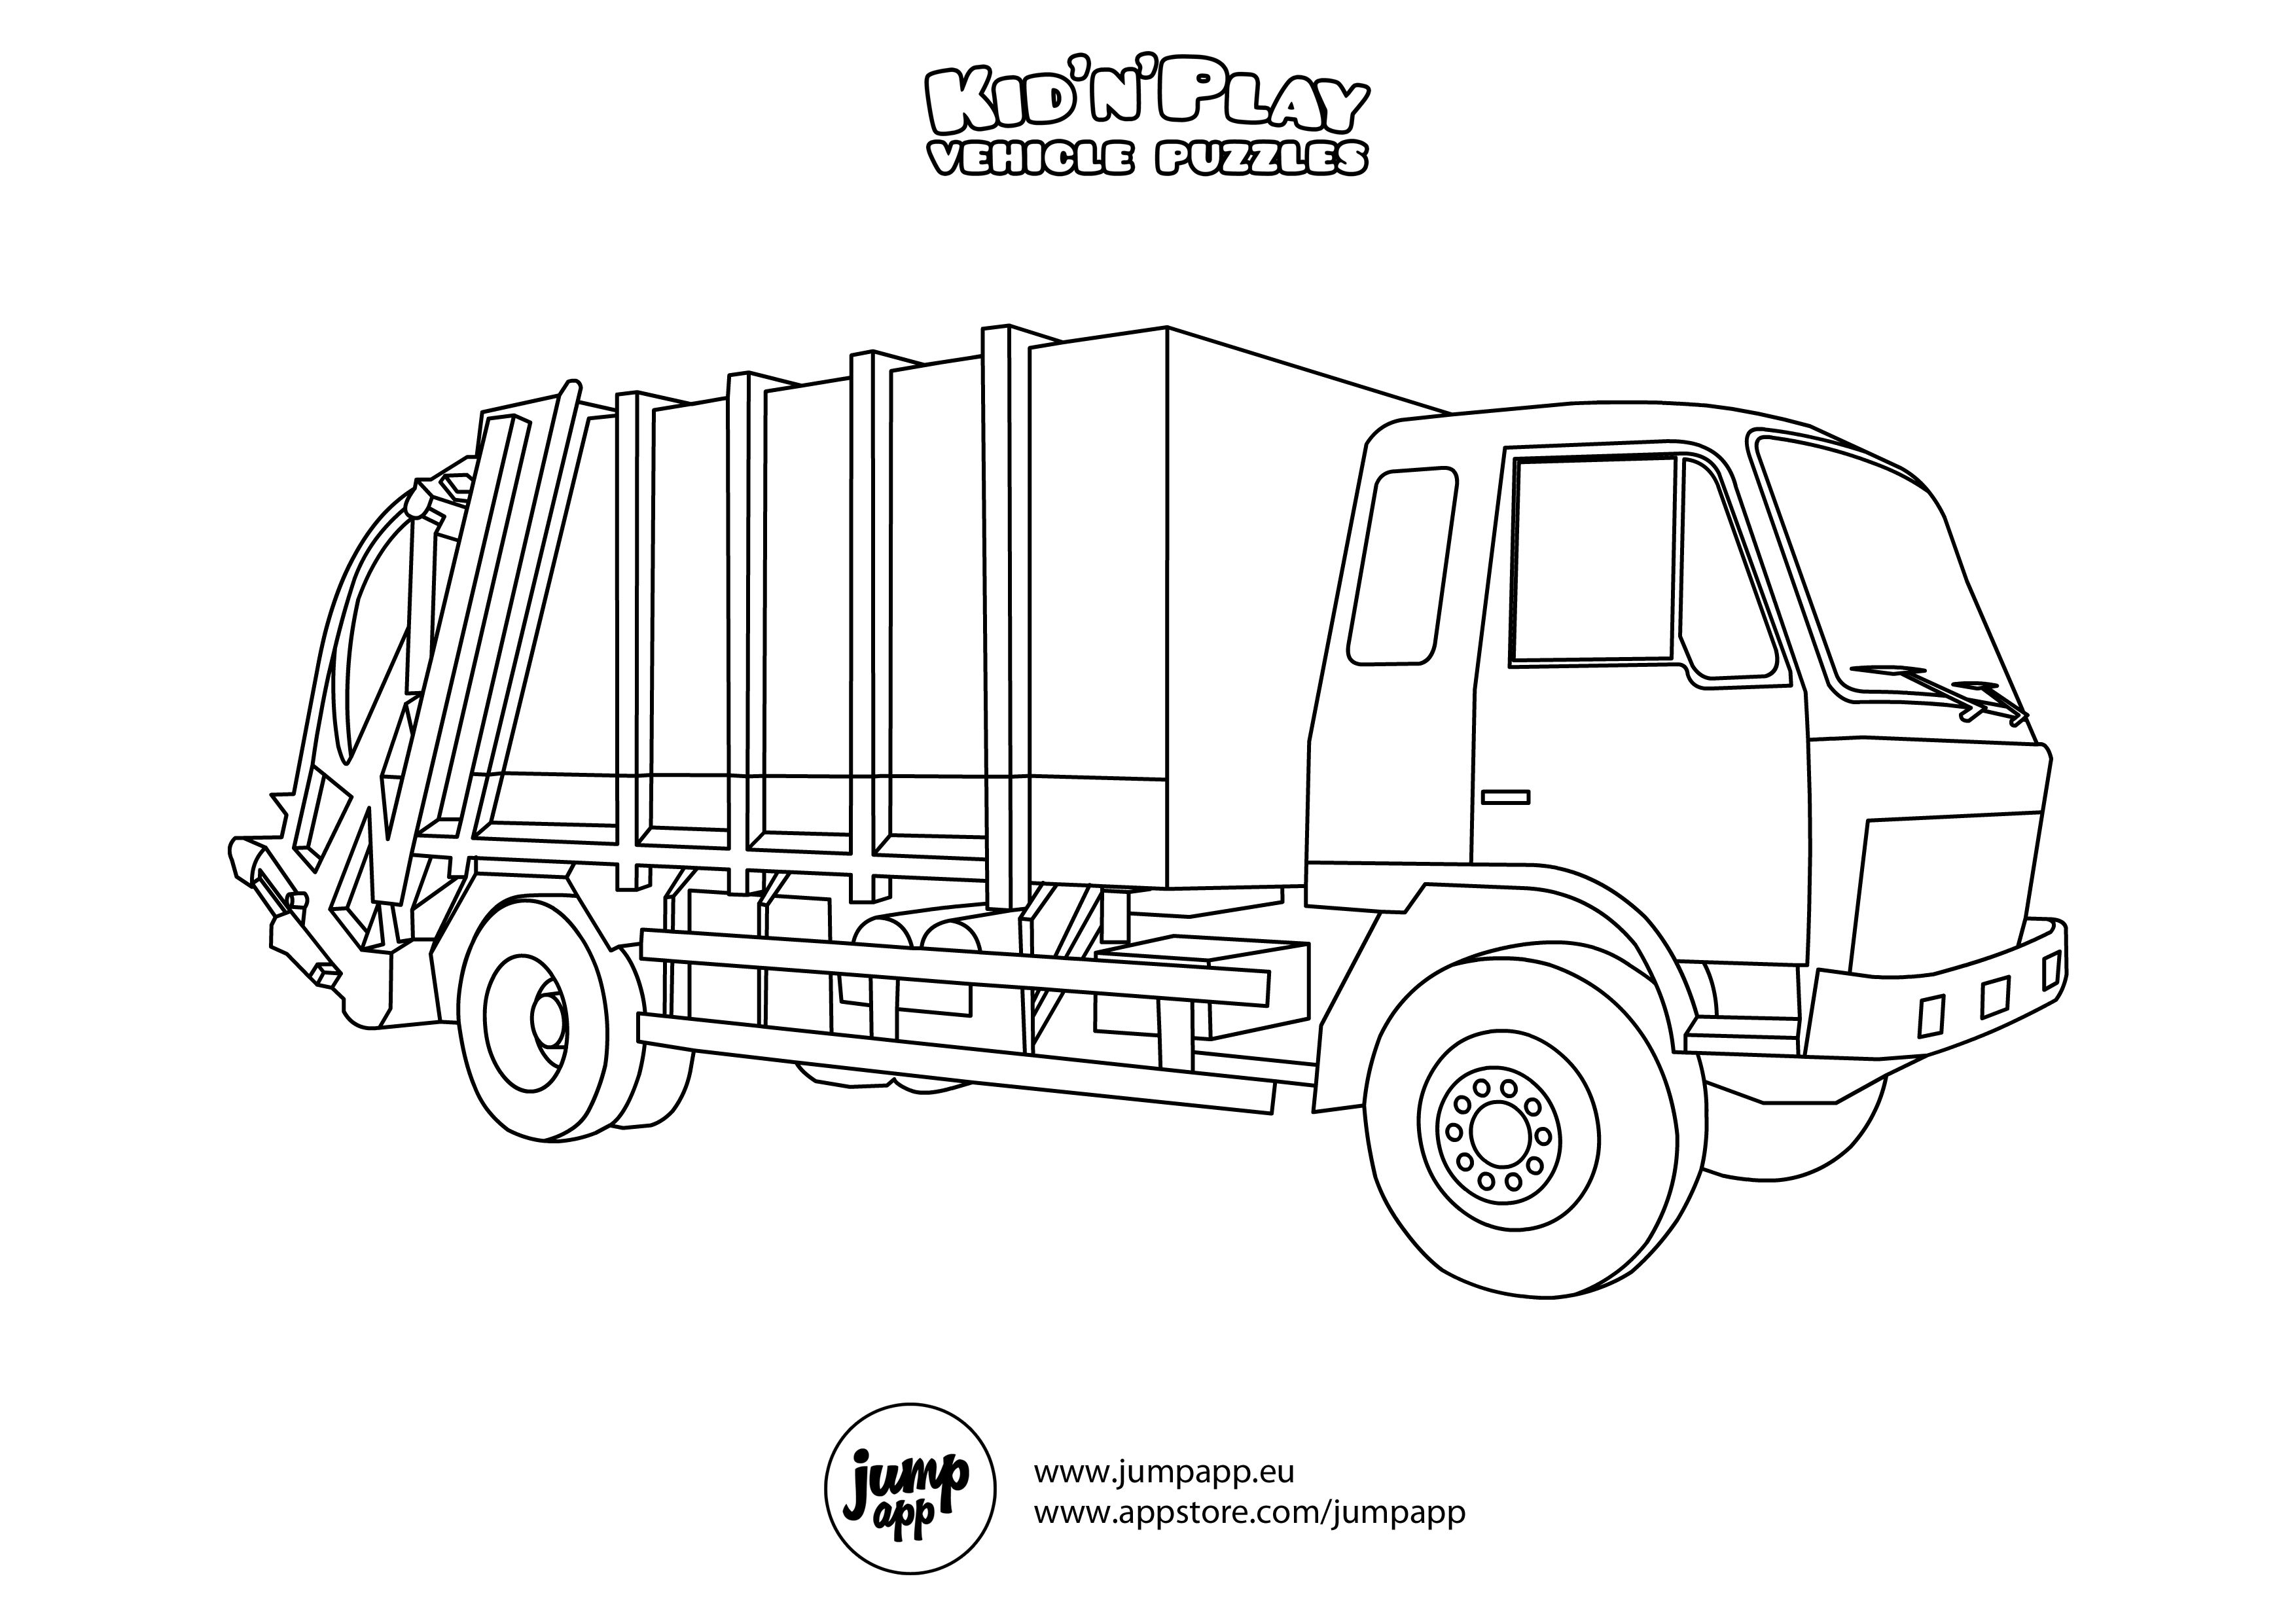 Free coloring pages garbage truck - 79b51370743b1192cc8d3e6ba4e8d3e6 Jpg 3 508 2 480 Pixels Garbage Truck Motioncolouring Pagescoloringrecyclingcar